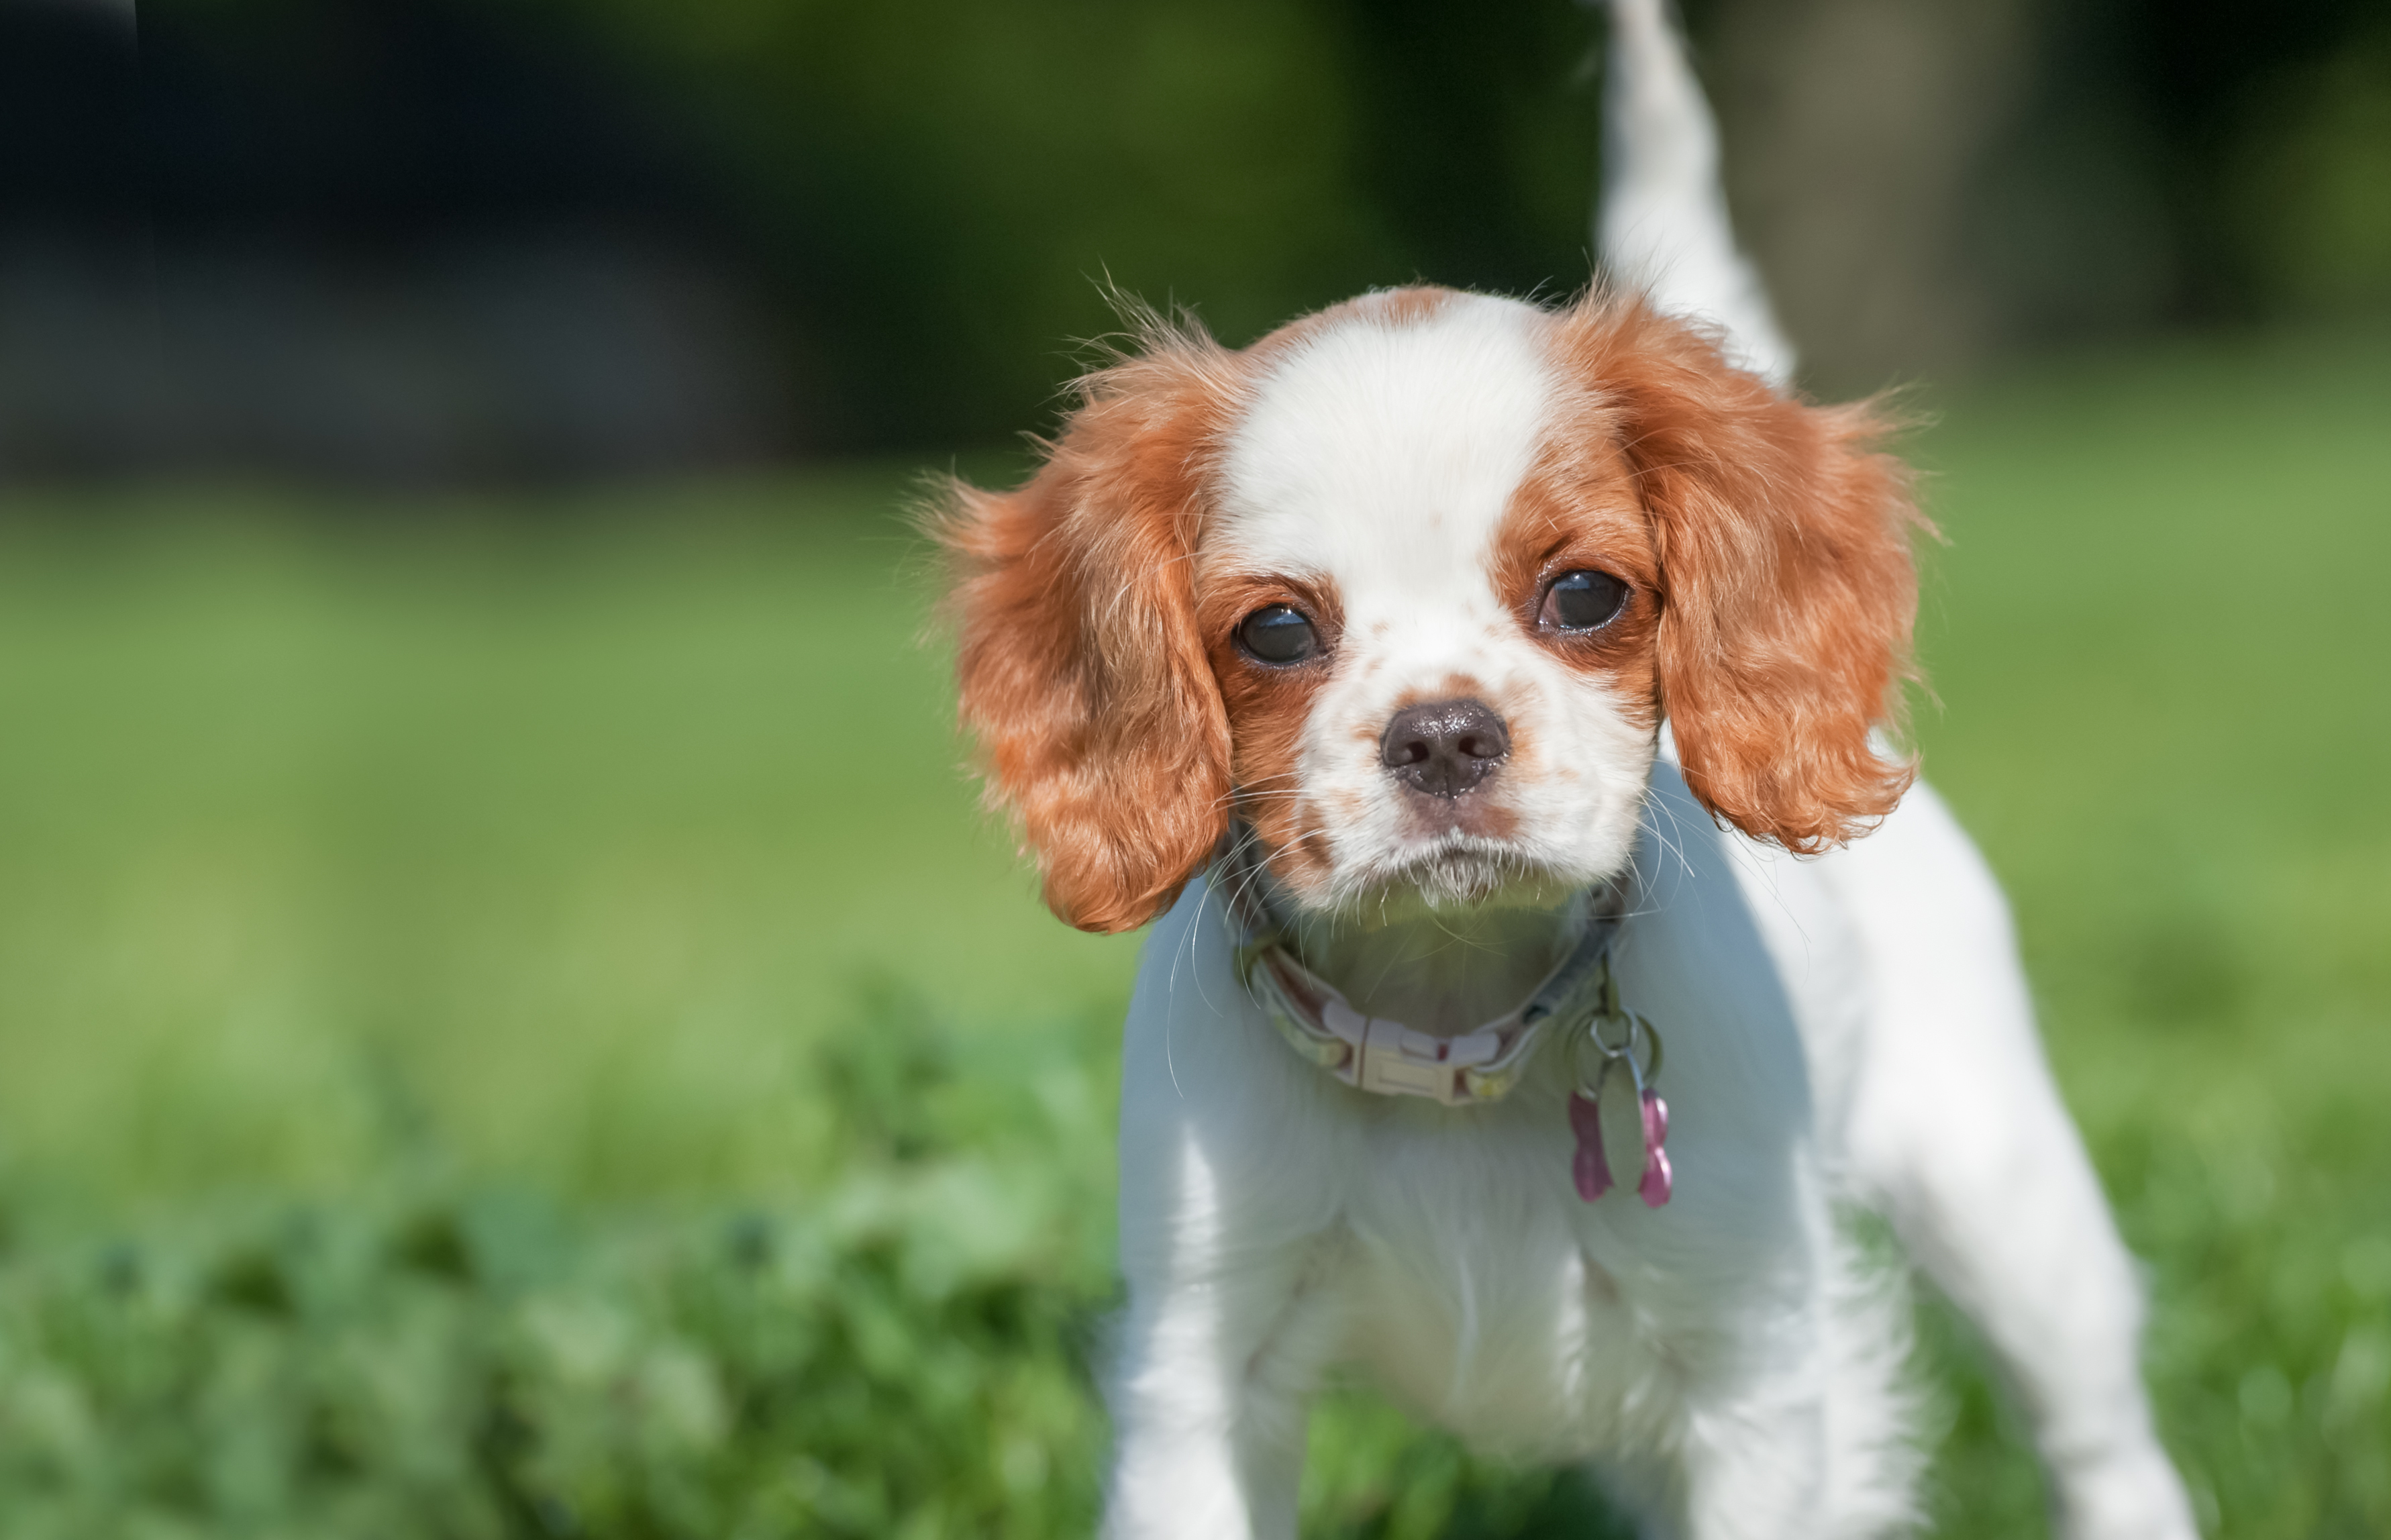 closeup of a playful spaniel puppy face